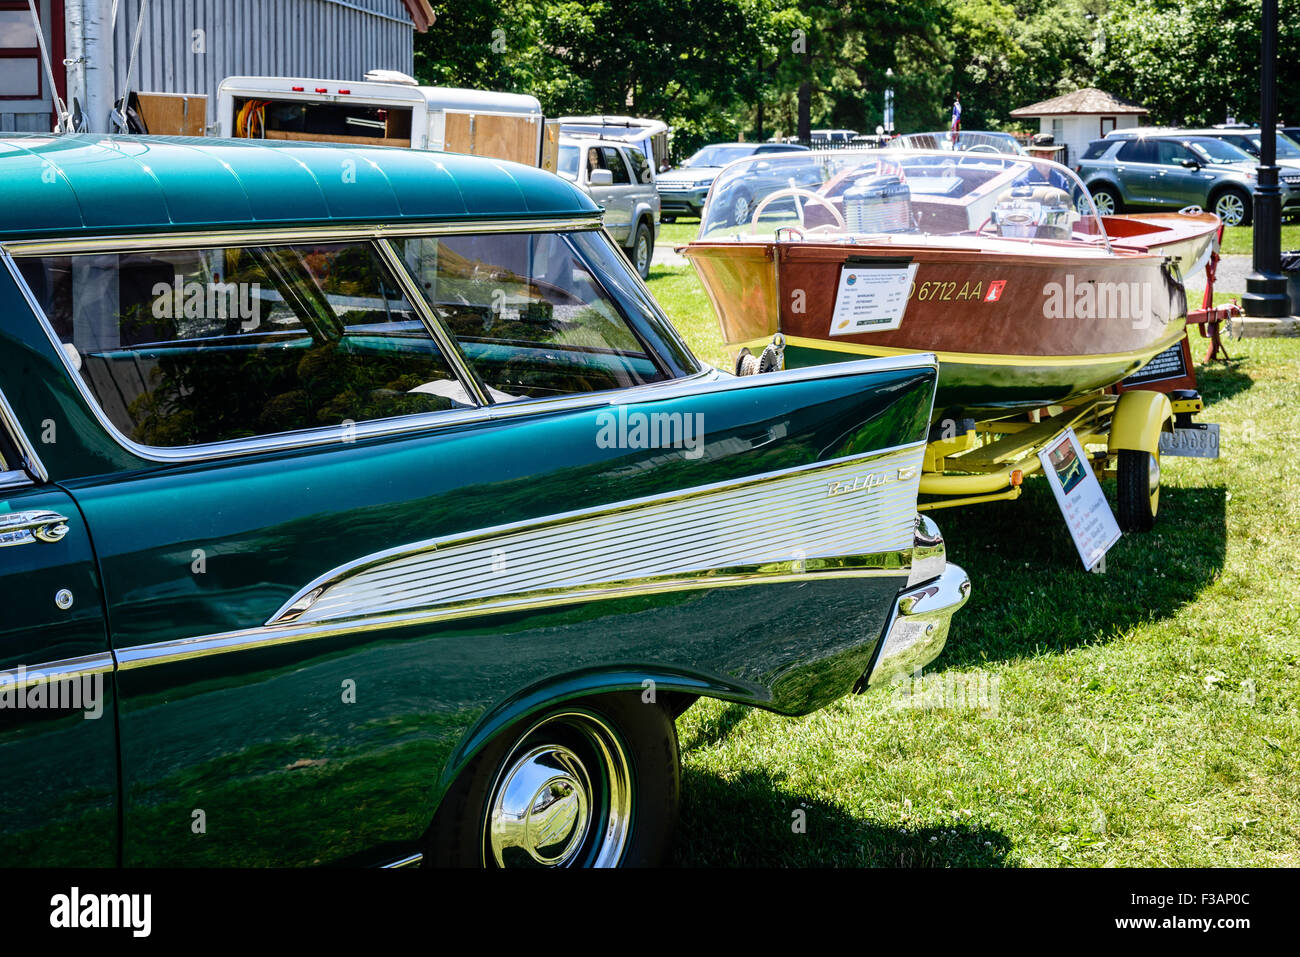 1957 Chevrolet Belair Nomad Towing Whirlwind Wooden Speedboat Chevy Bel Air Chesapeake Bay Maritime Museum St Michaels Maryland